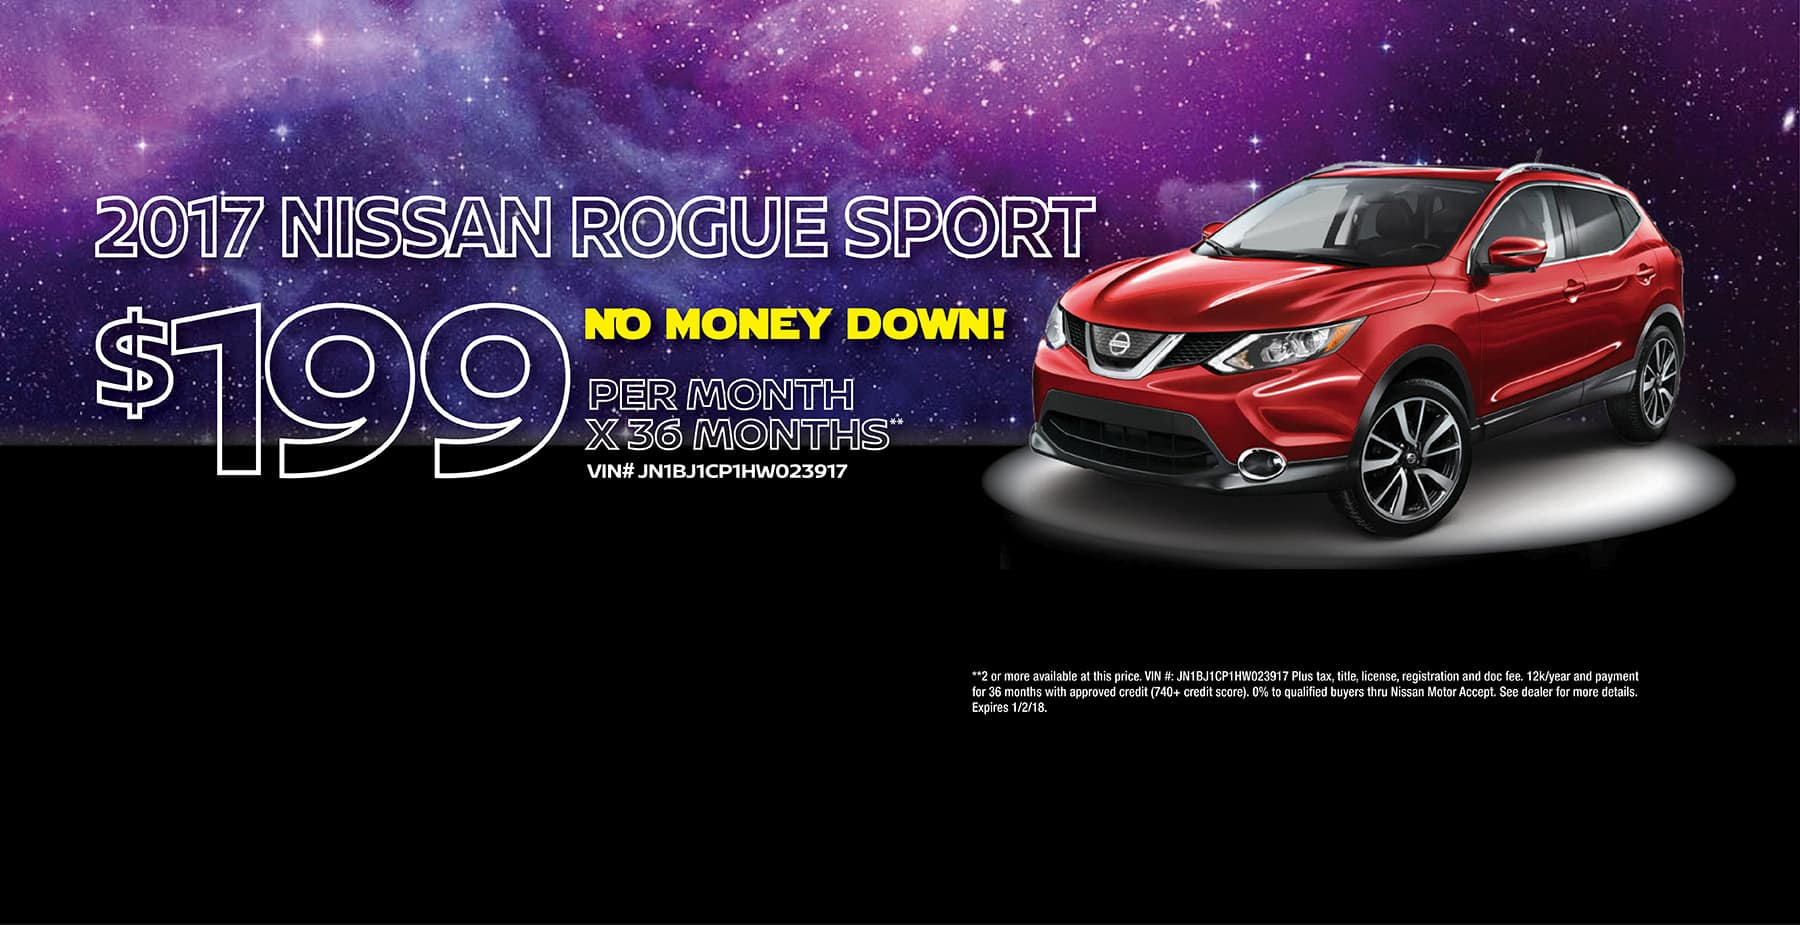 Star Nissan December Holiday Sale 2017 Nissan Rogue Sport